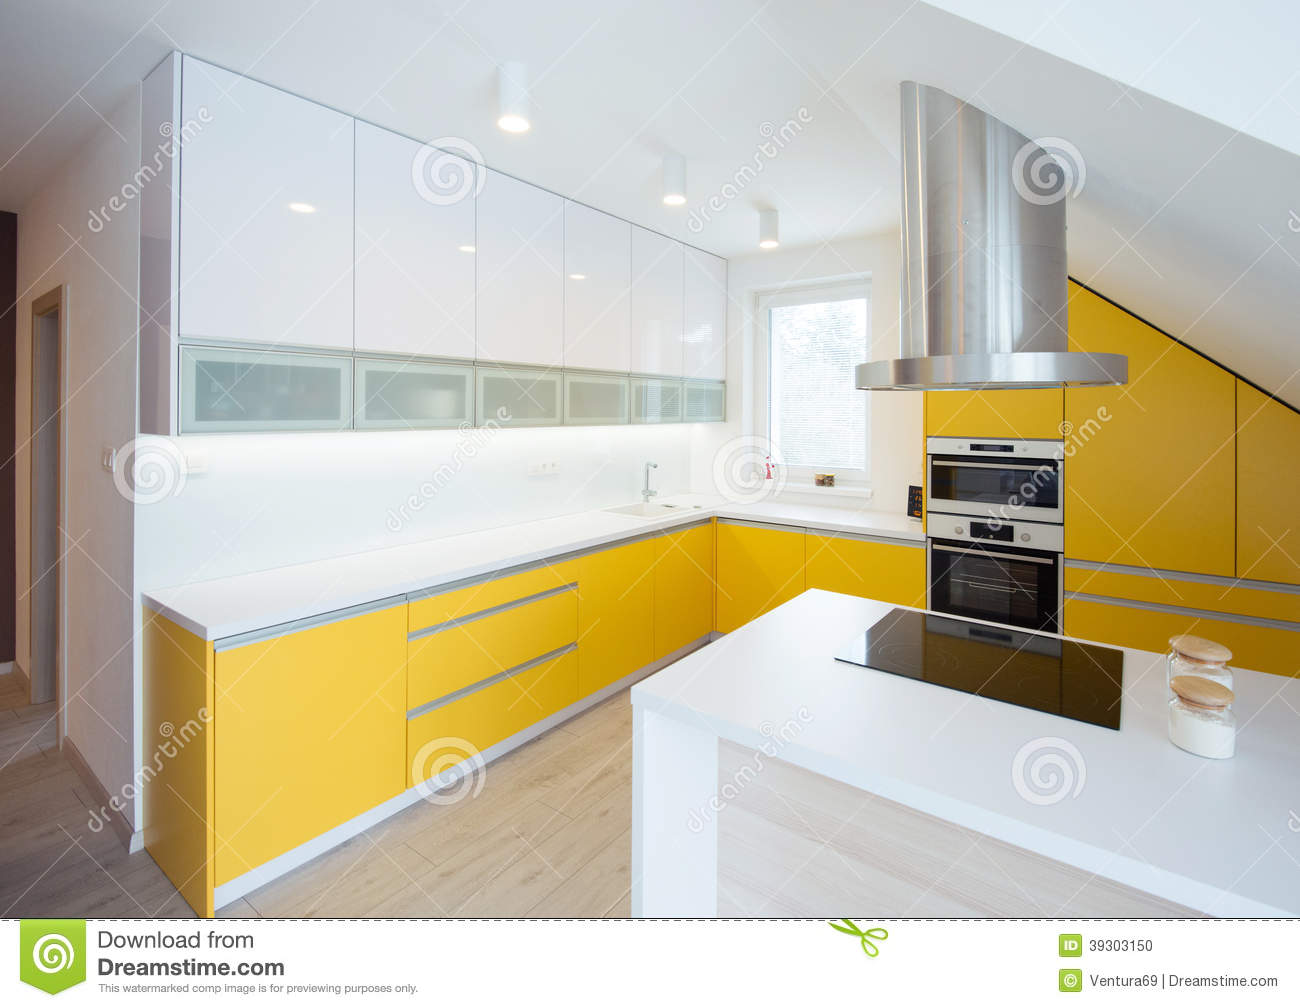 Yellow And White Kitchen Contemporary Kitchen Interior Stock Photo Image 39303150